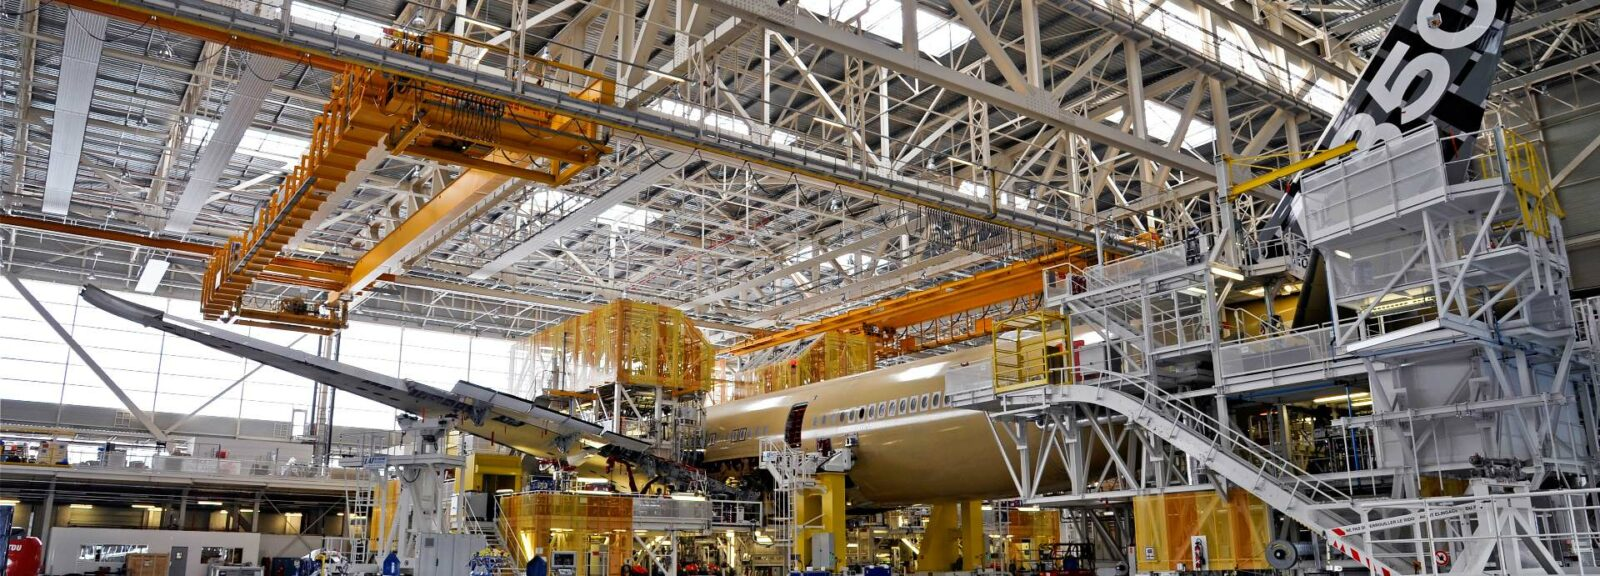 assembly-line-aircraft a350-toulouse